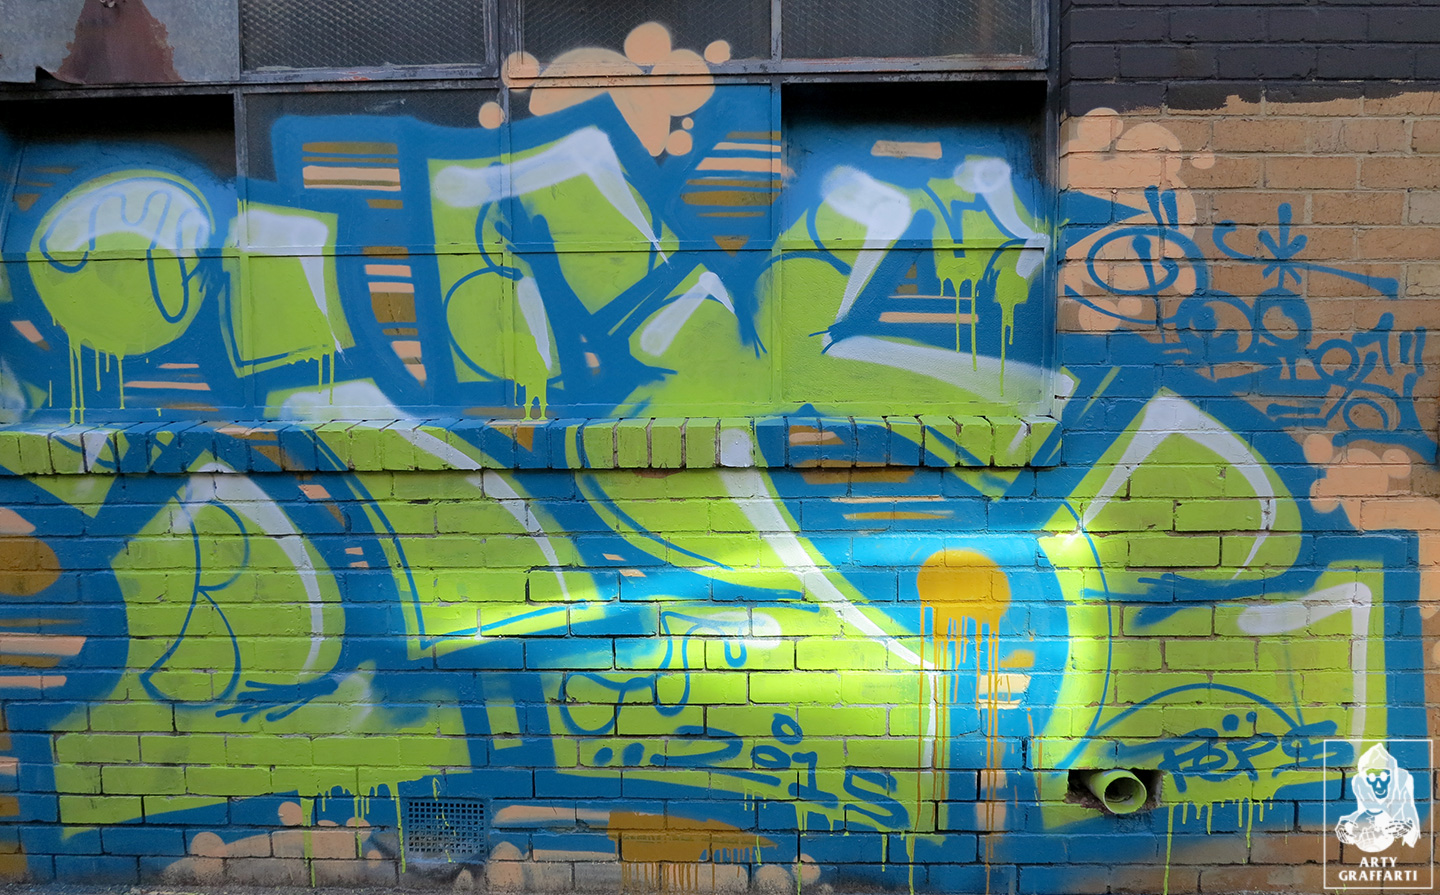 Prix-Collingwood-Graffiti-Melbourne-Arty-Graffarti-5